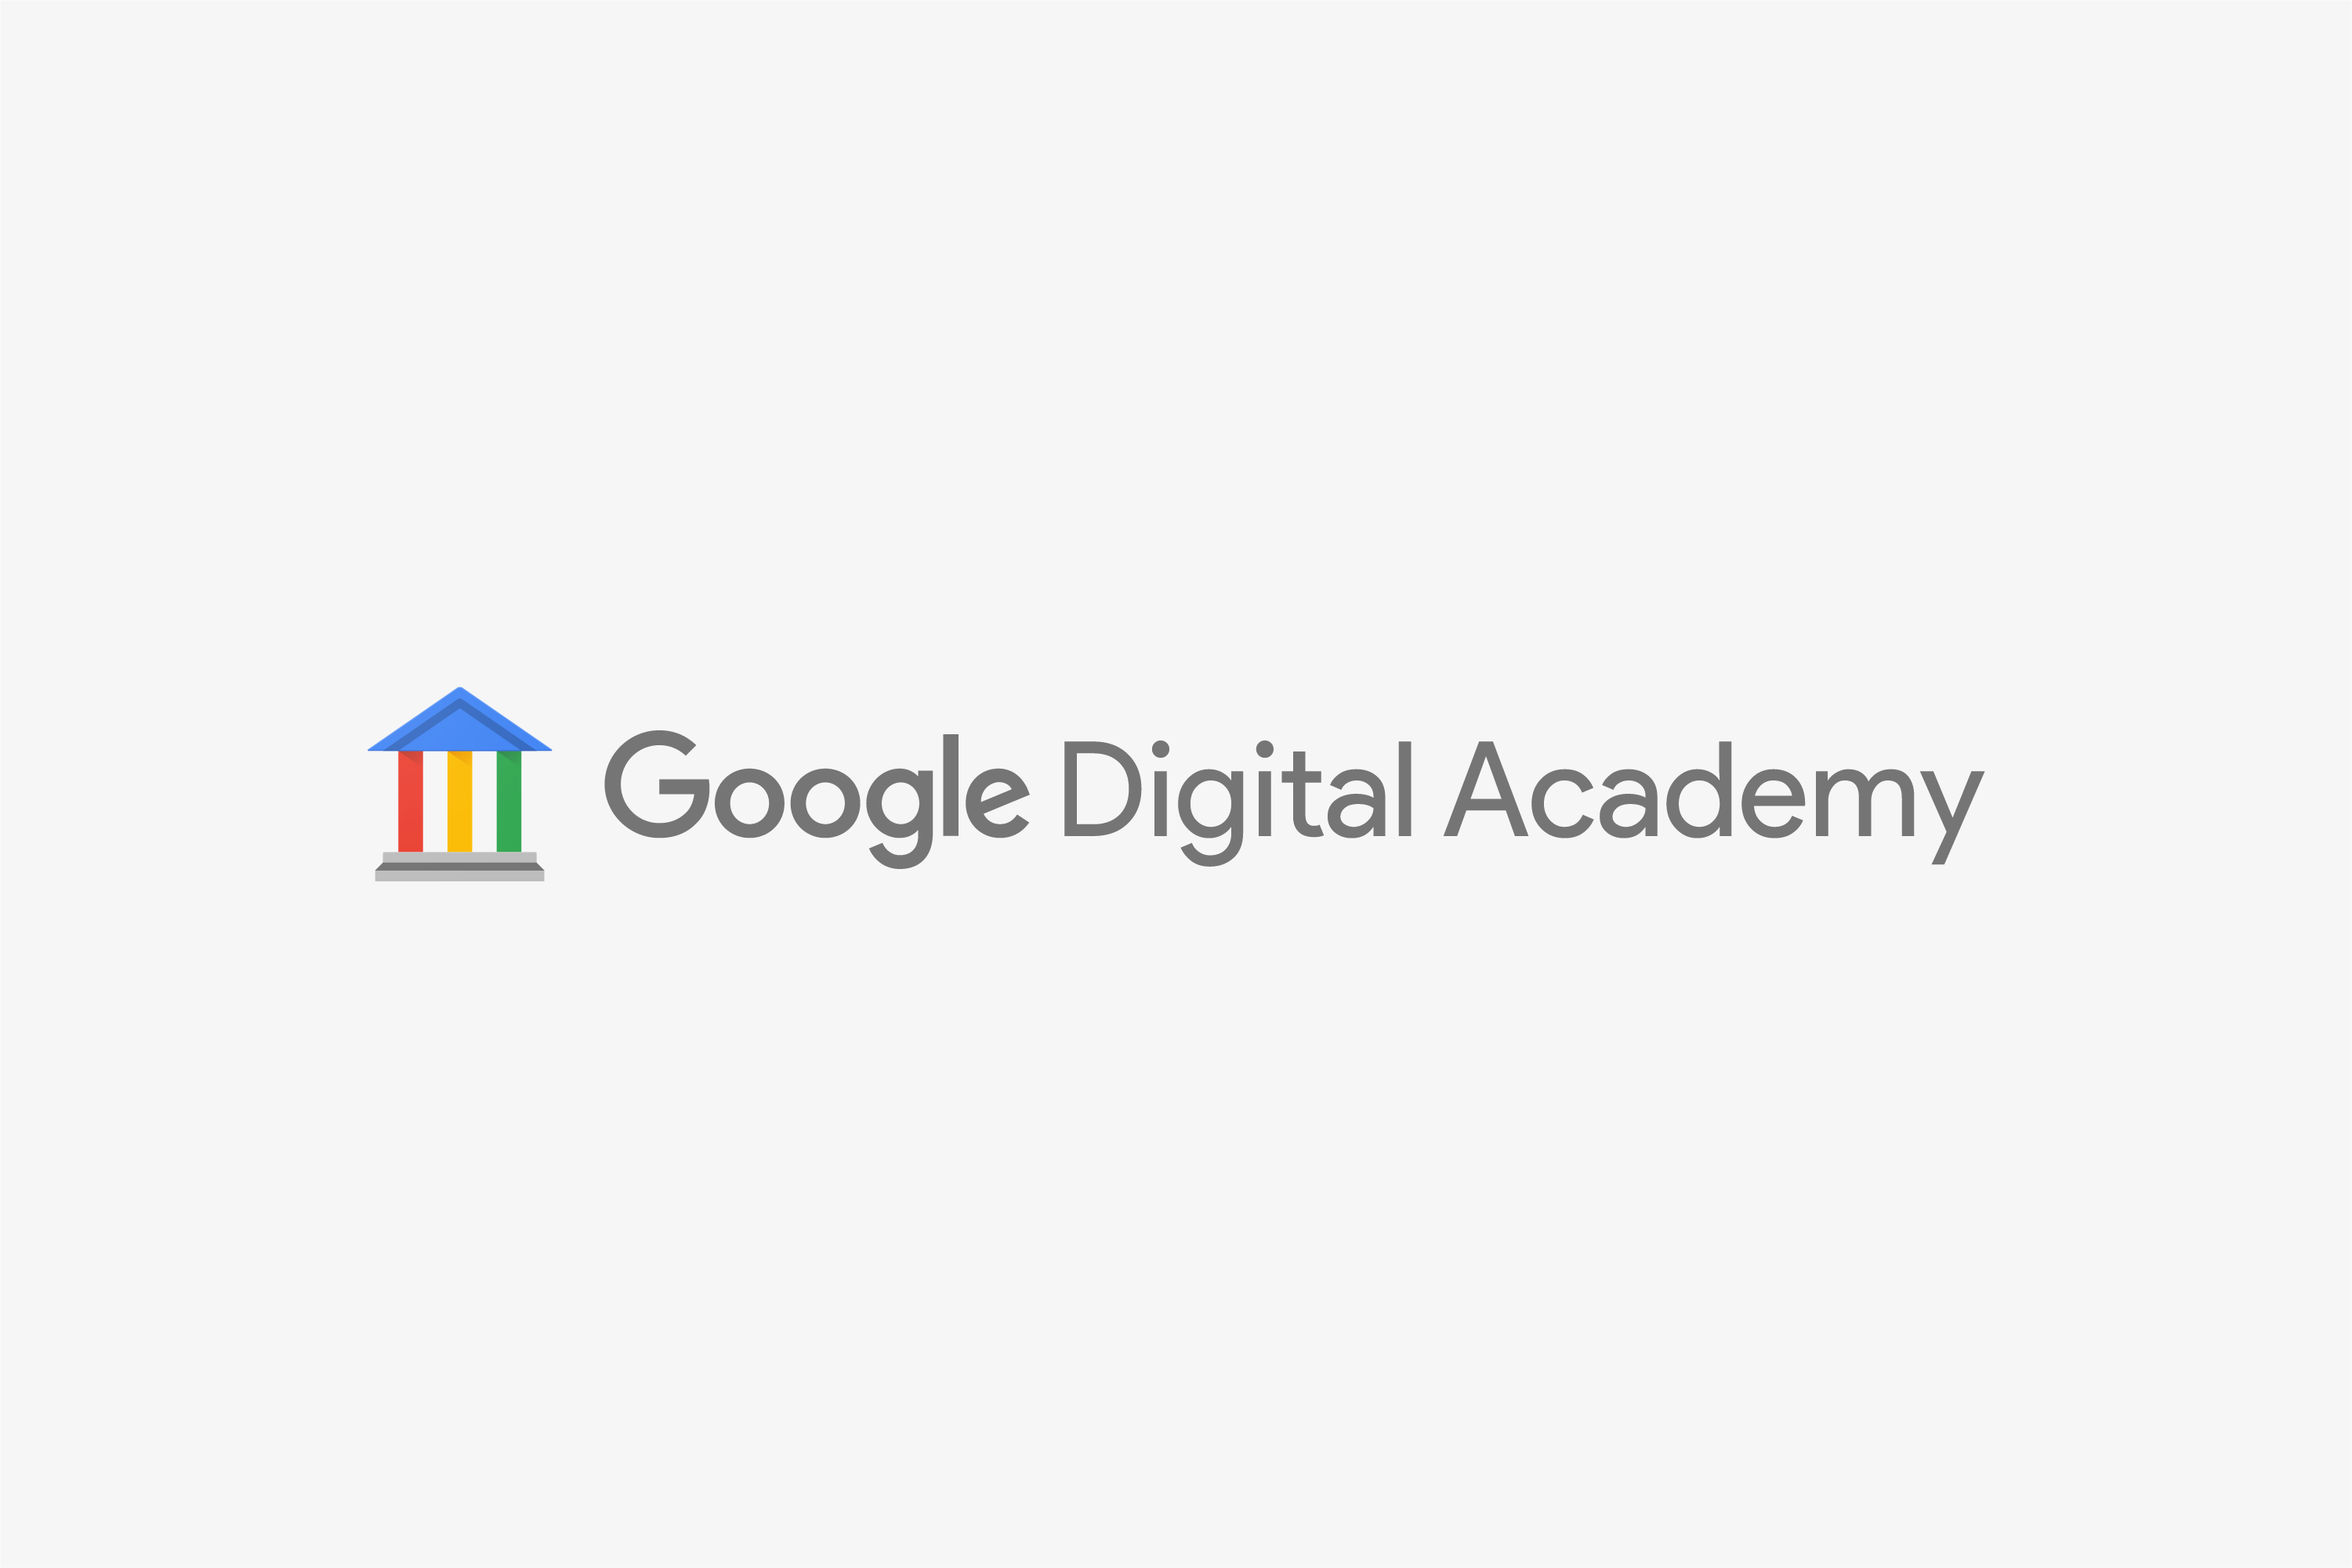 Google Digital Academy Logo Lockup